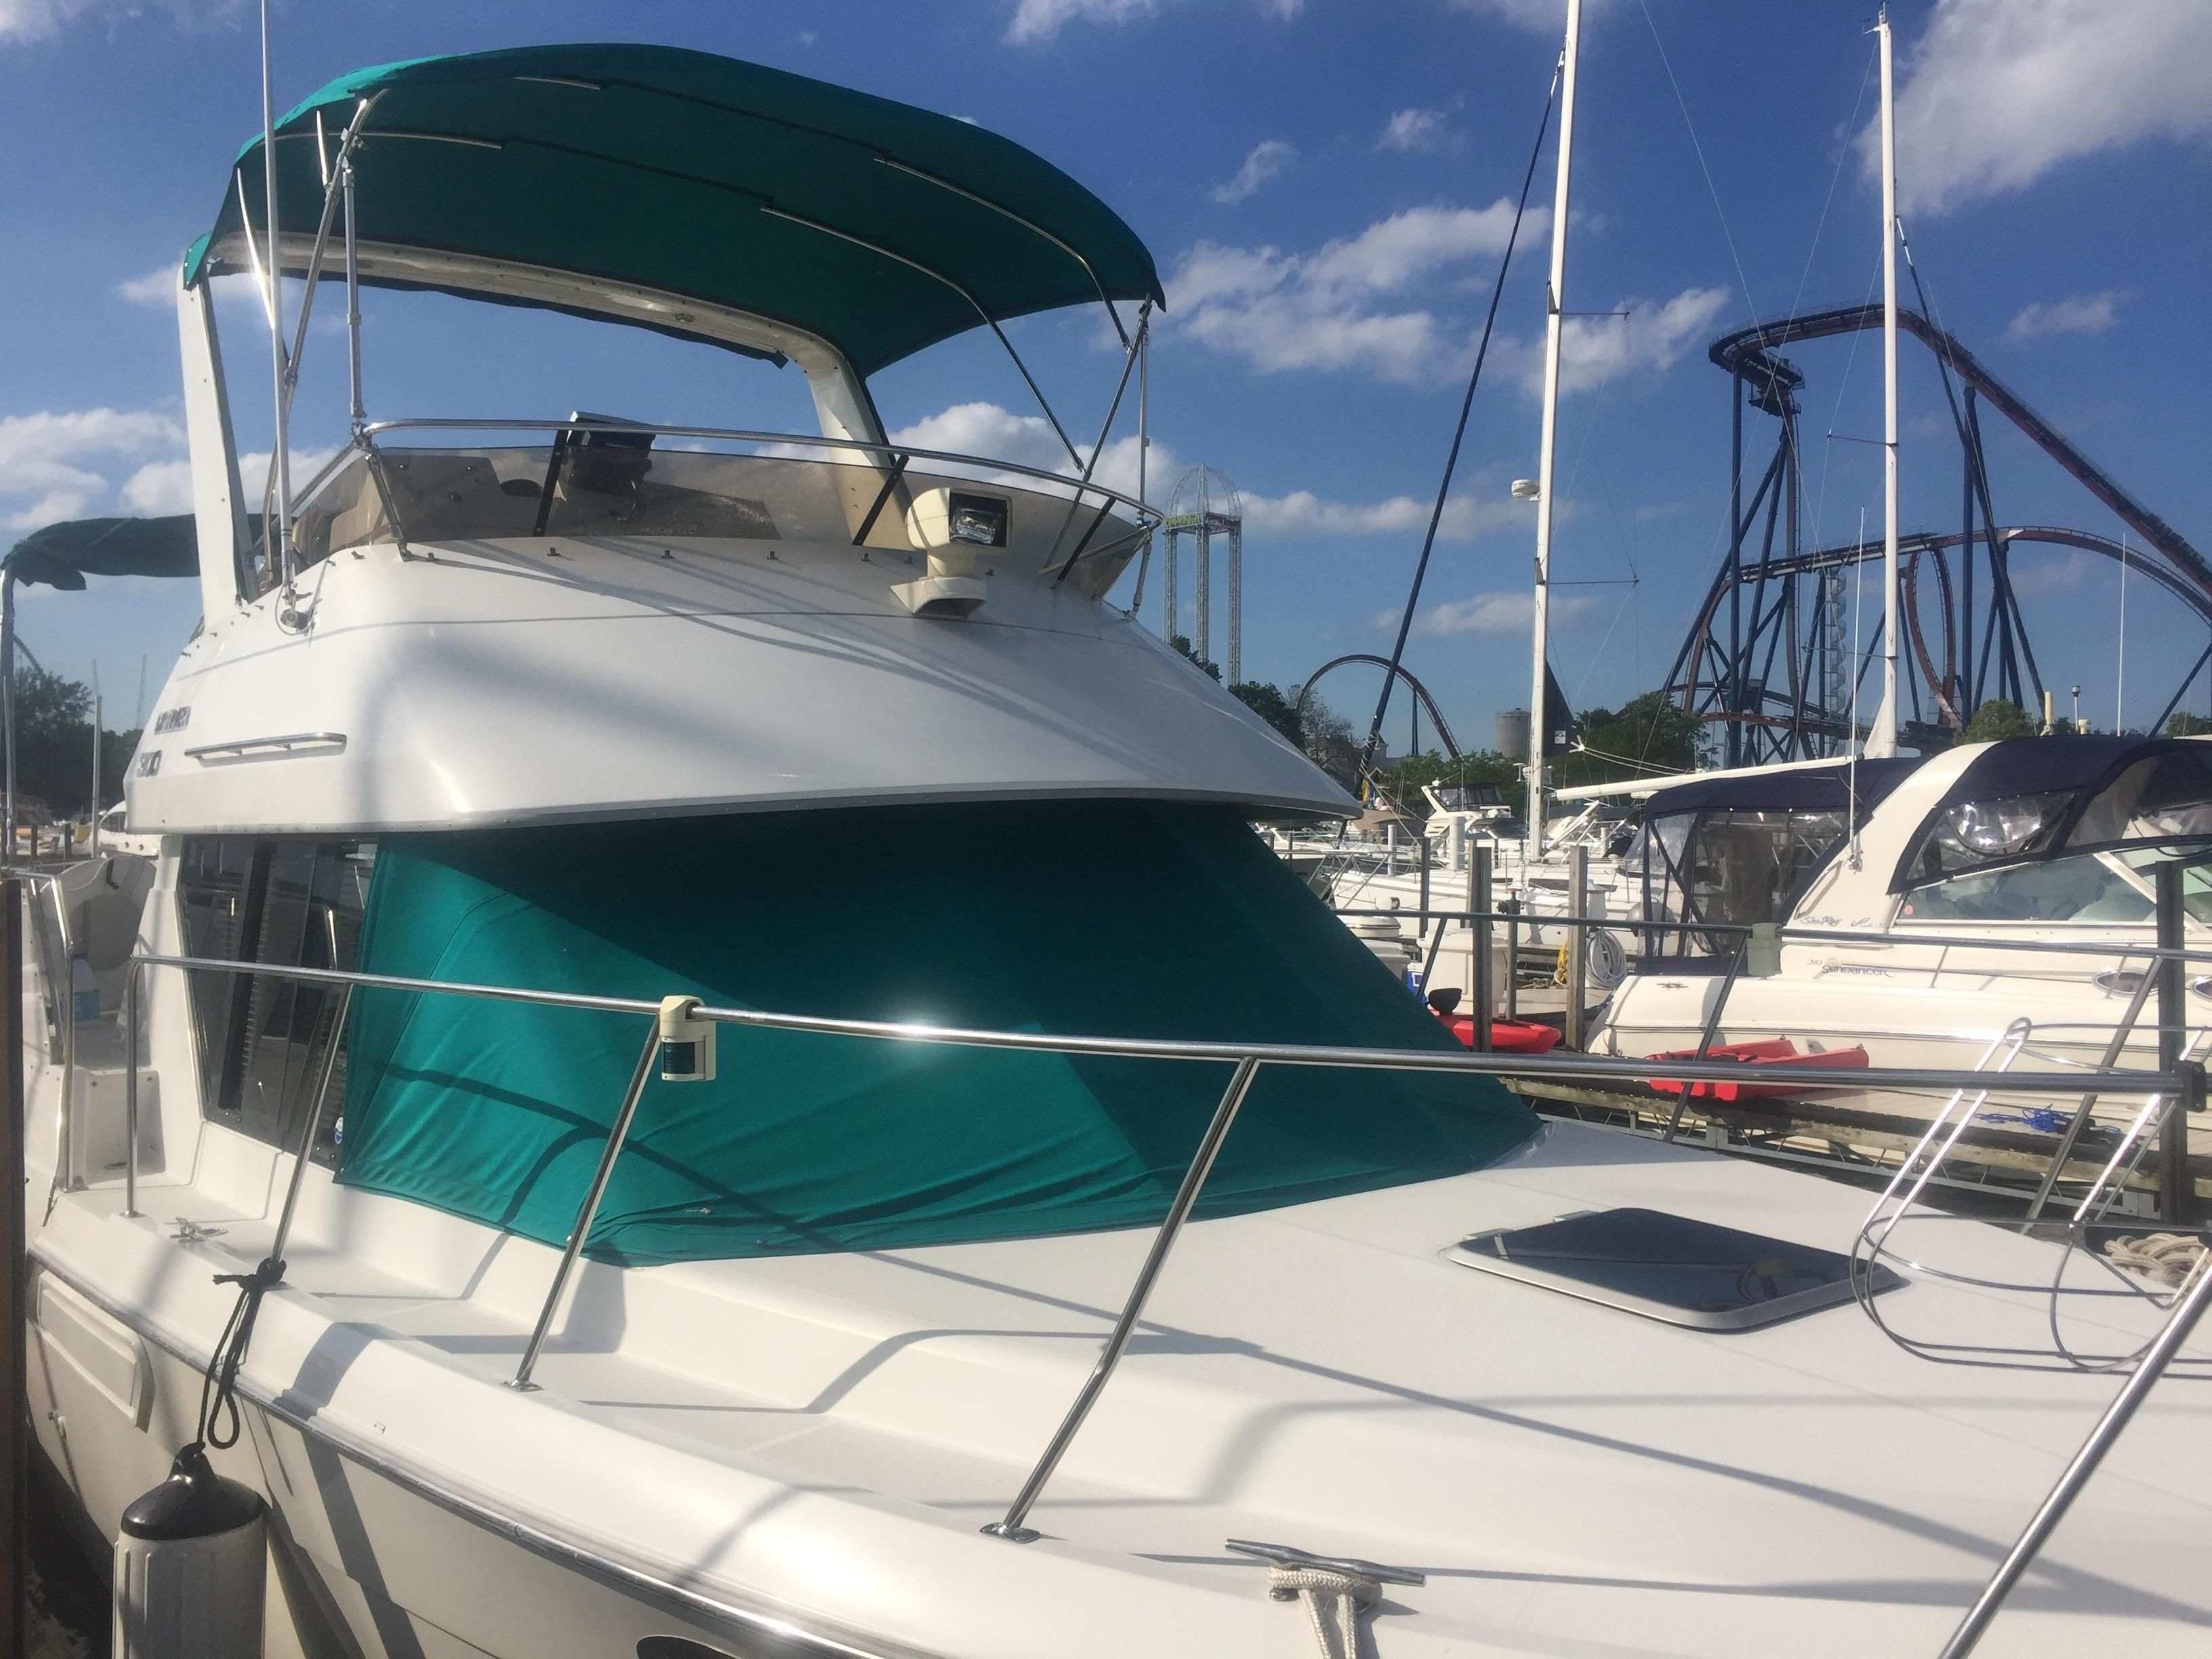 1993 carver 300 aft cabin motor yacht power boat for sale for Carver aft cabin motor yacht